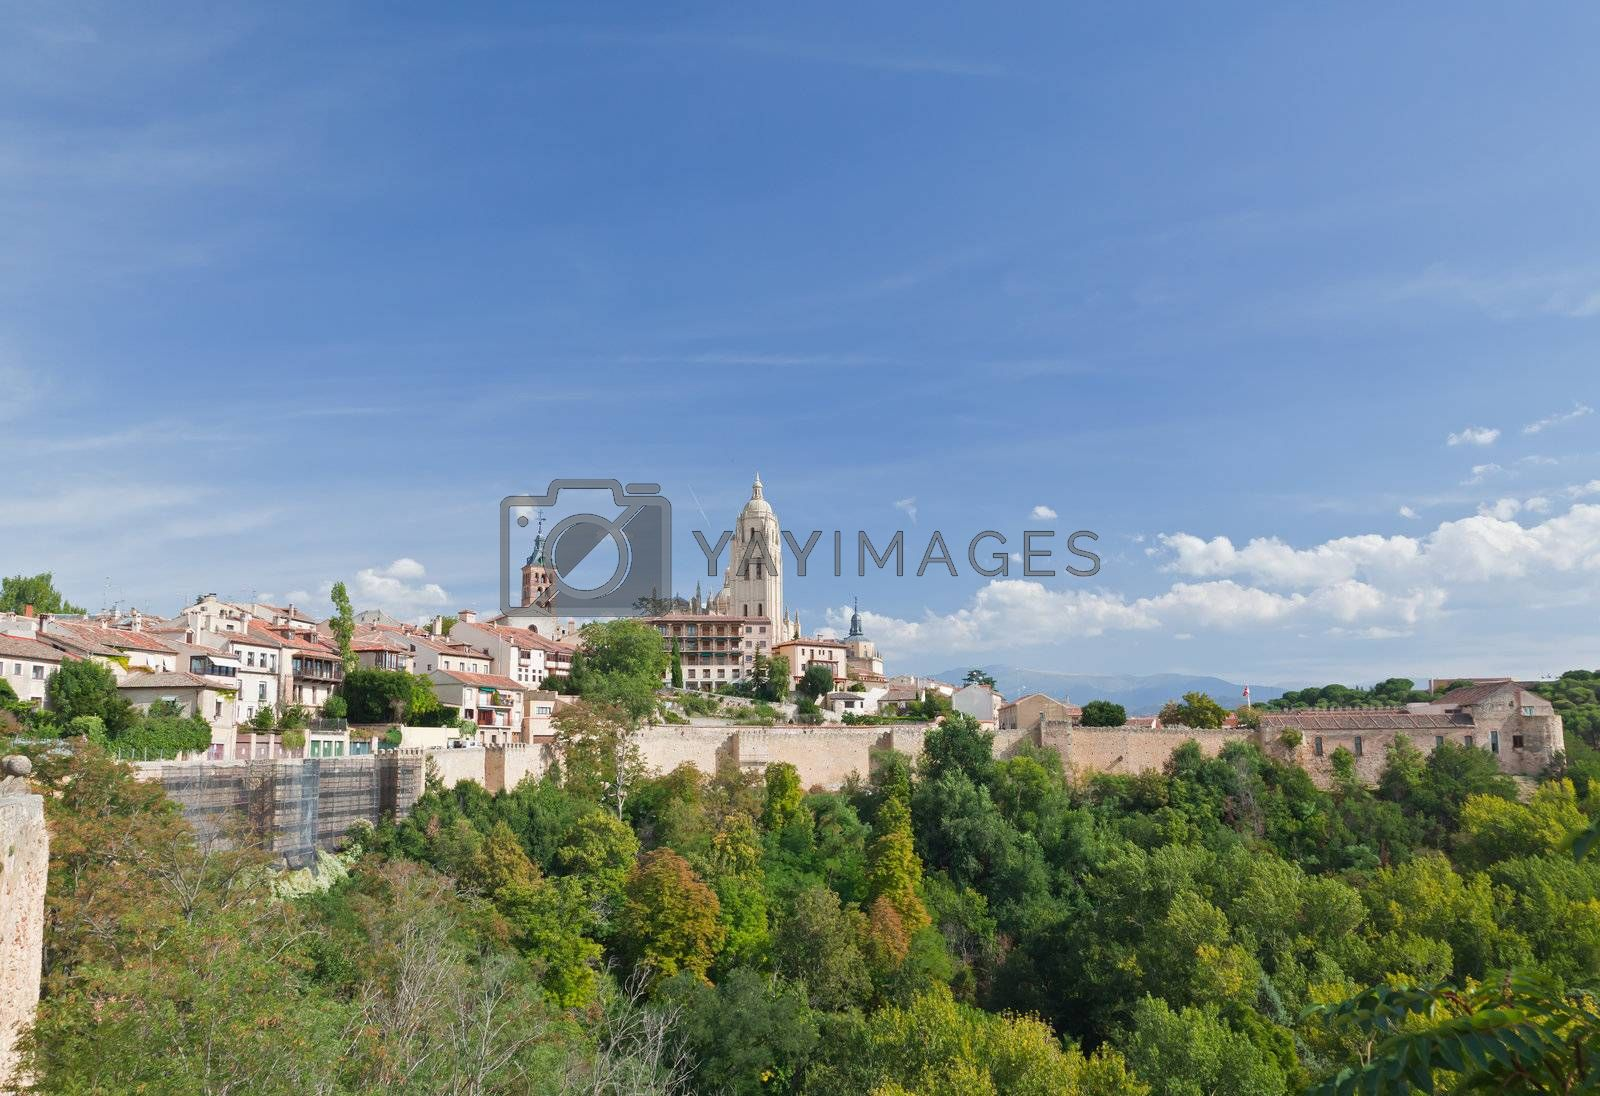 Royalty free image of Segovia cathedral, Spain by gary718